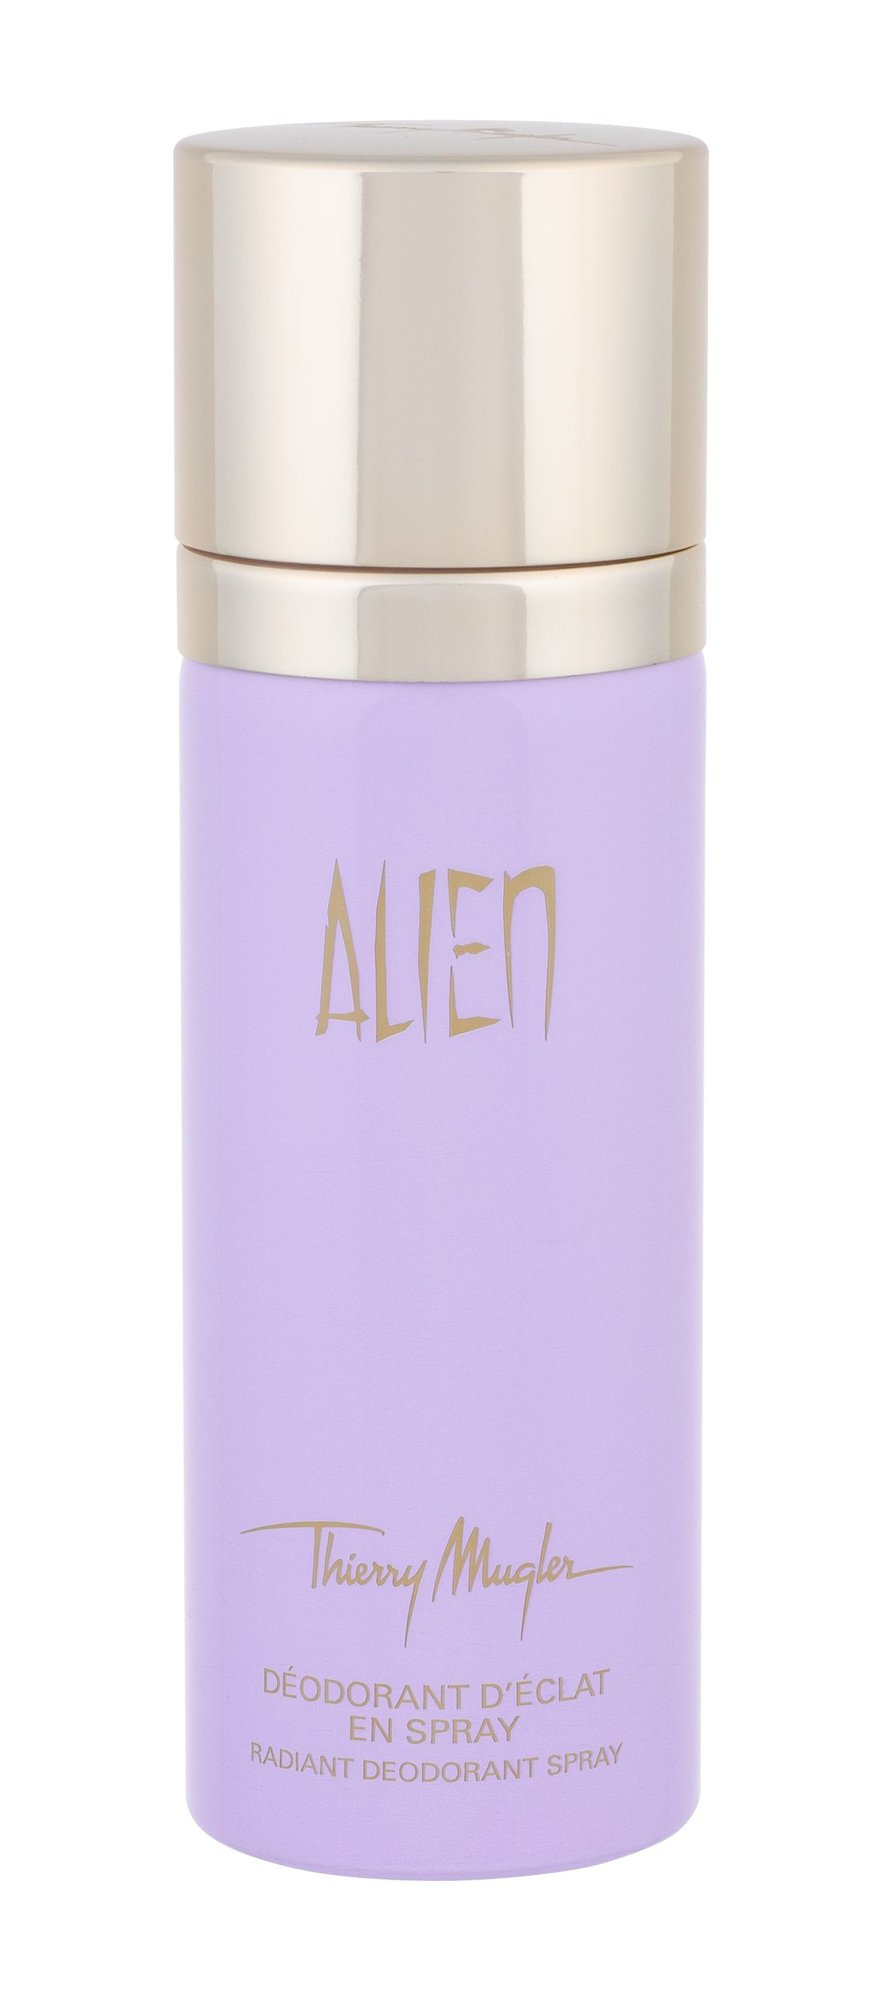 Thierry Mugler Alien Deodorant 100ml